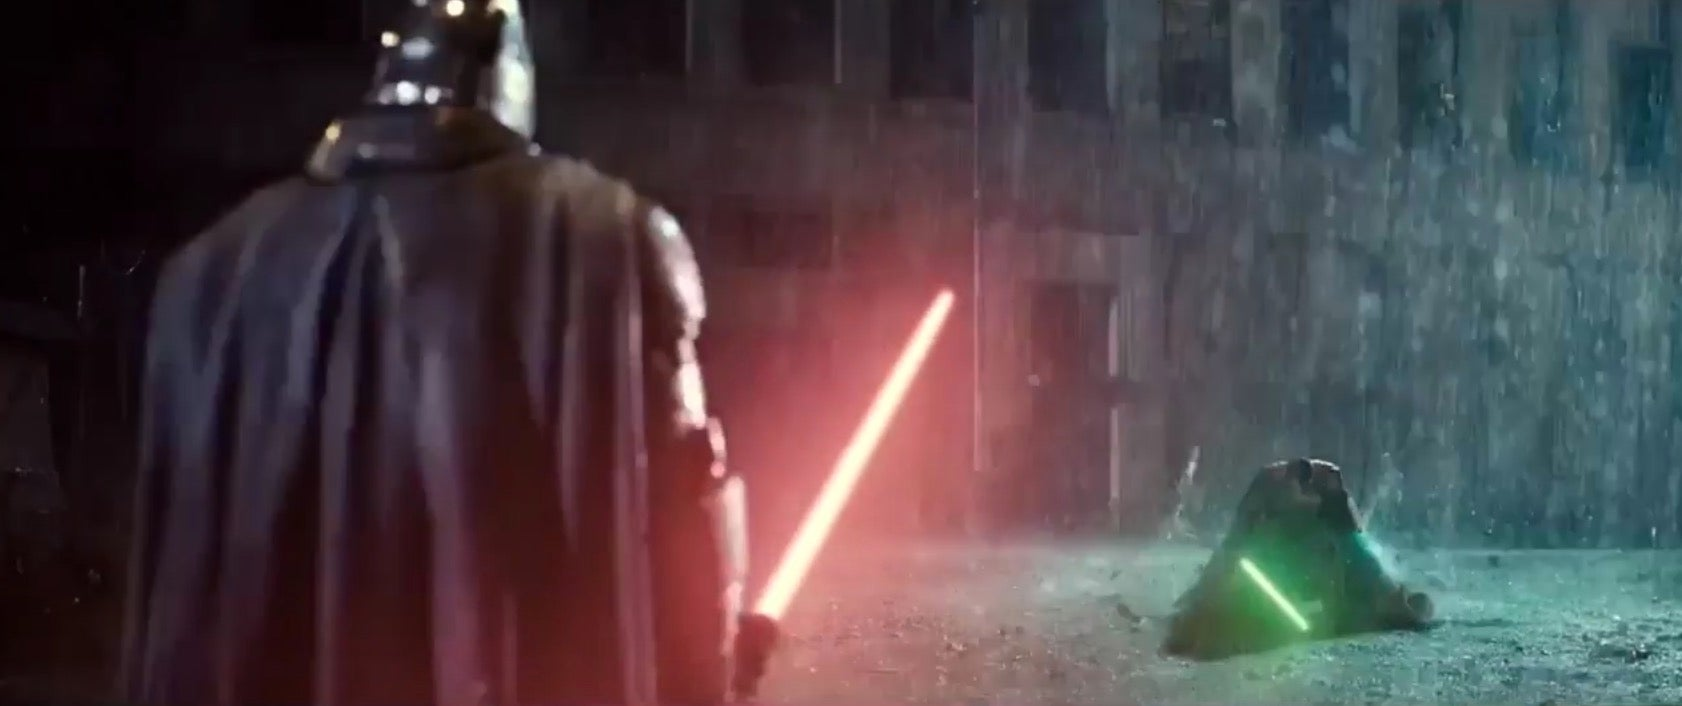 There's One Big Problem With Zack Snyder's Batman V Superman/Star Wars Mashup Video